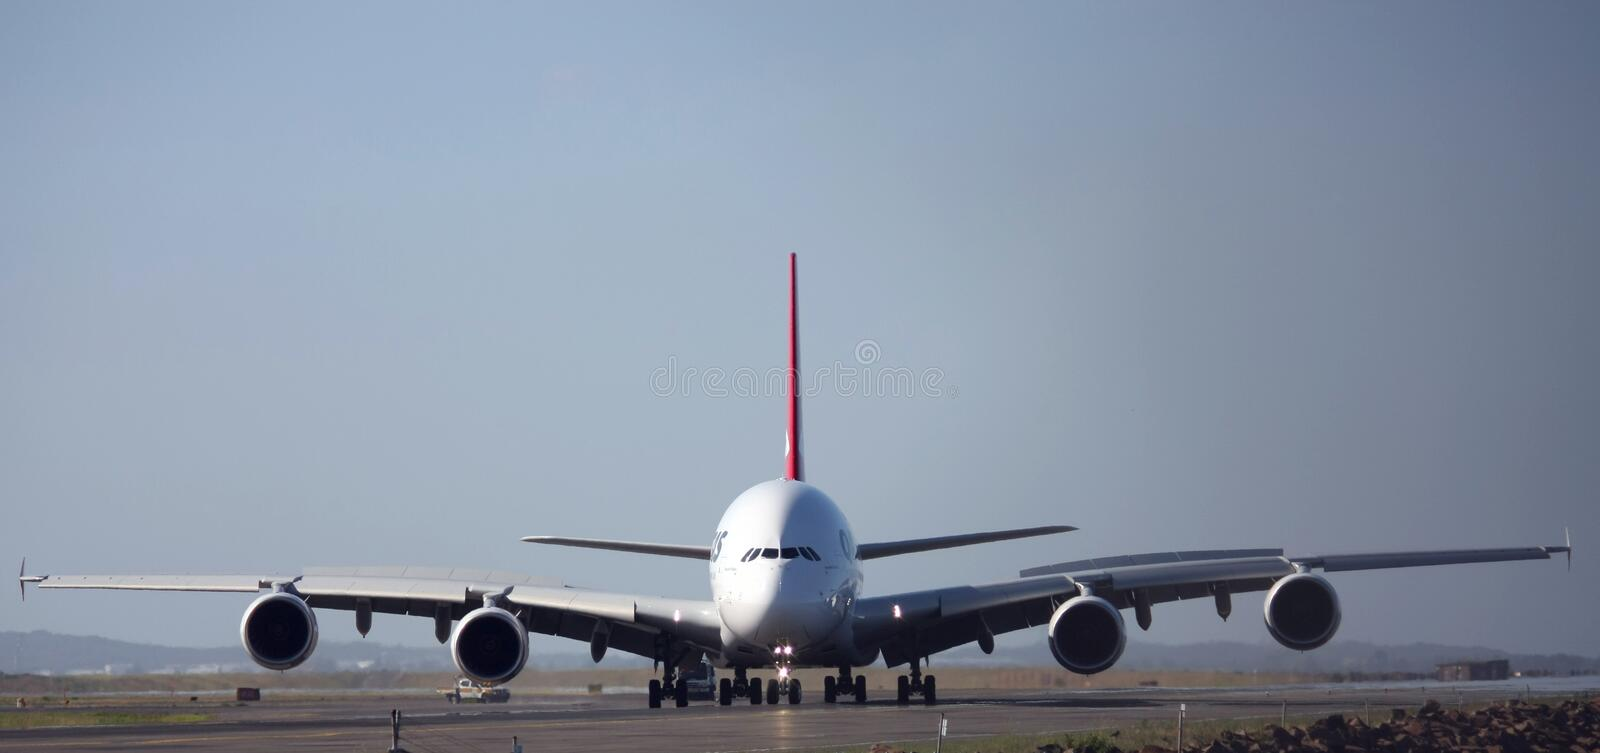 Airbus A380 front view on runway royalty free stock photography